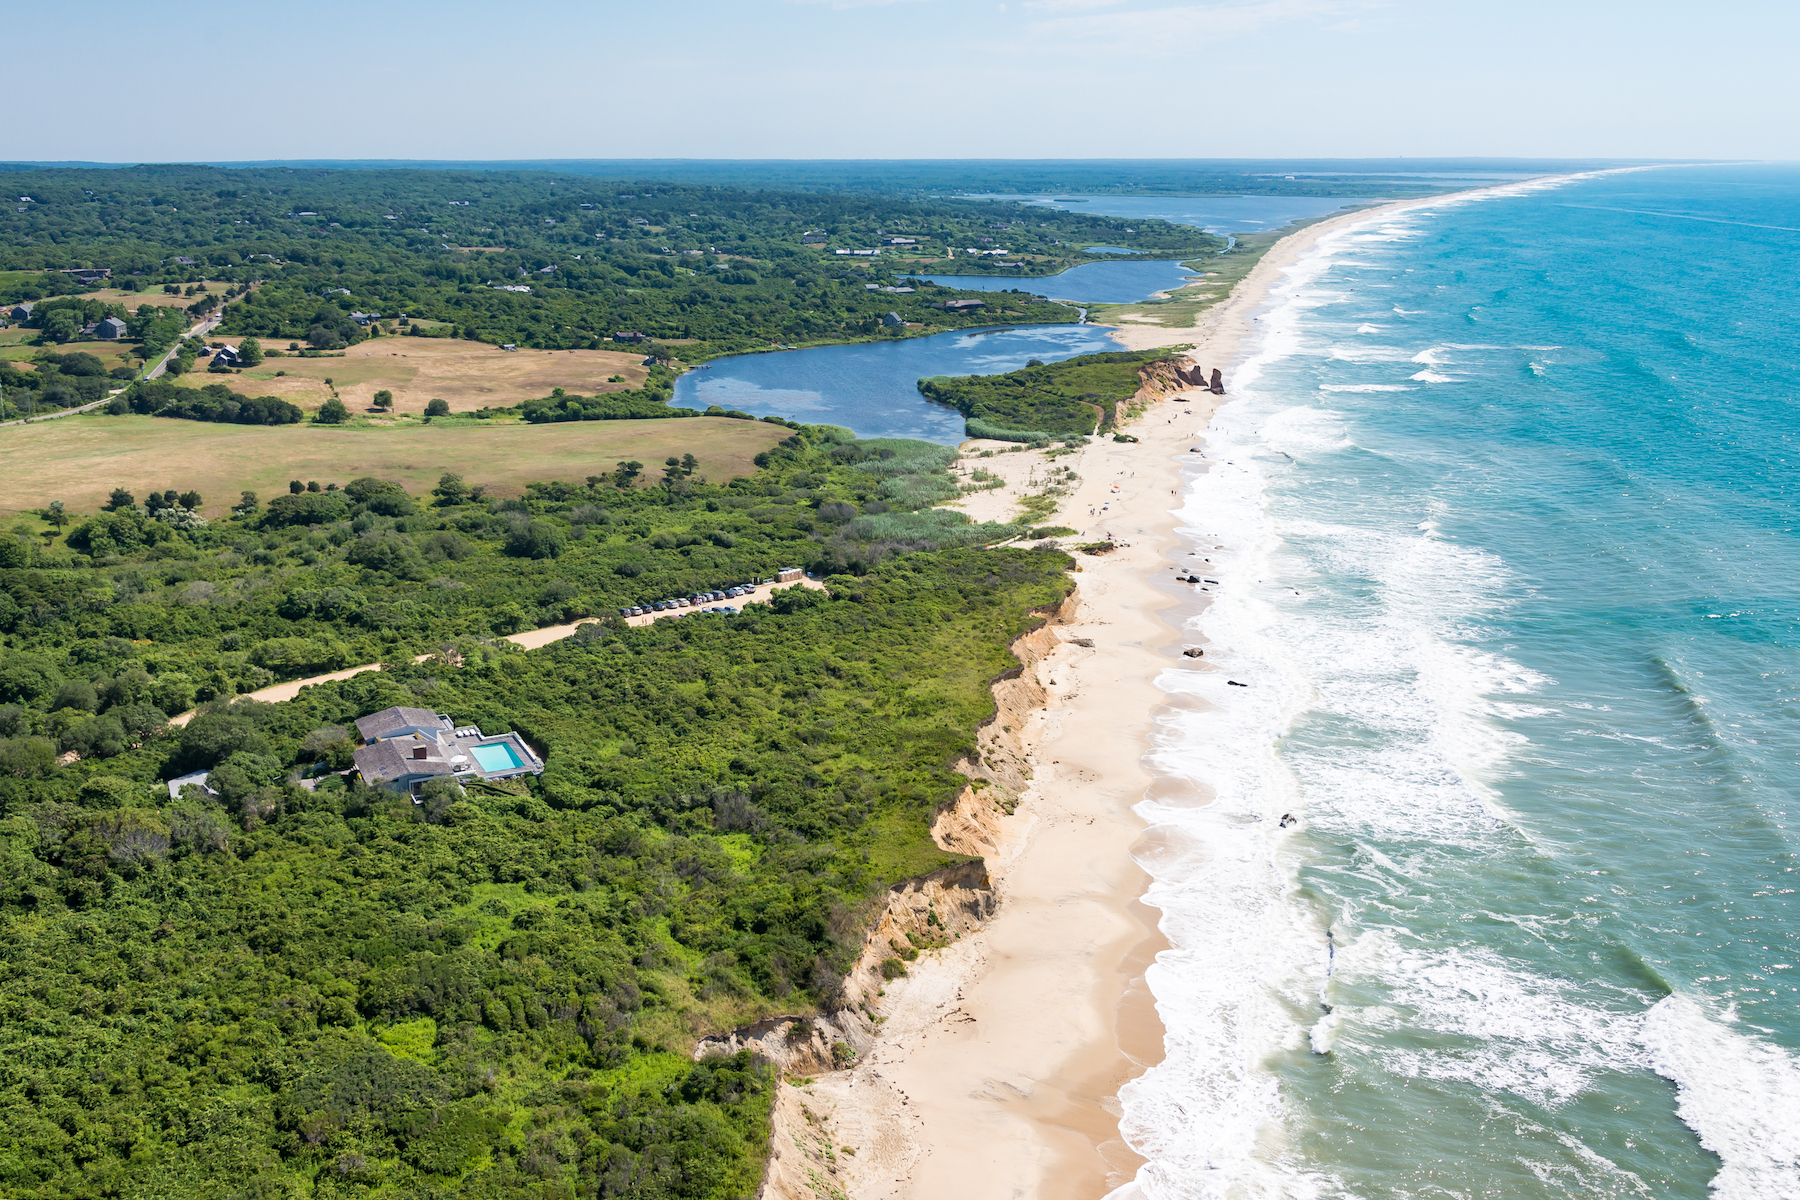 Single Family Homes for Sale at Oceanfront home with swimming pool in Chilmark 1 Azalea Lane Chilmark, Massachusetts 02535 United States